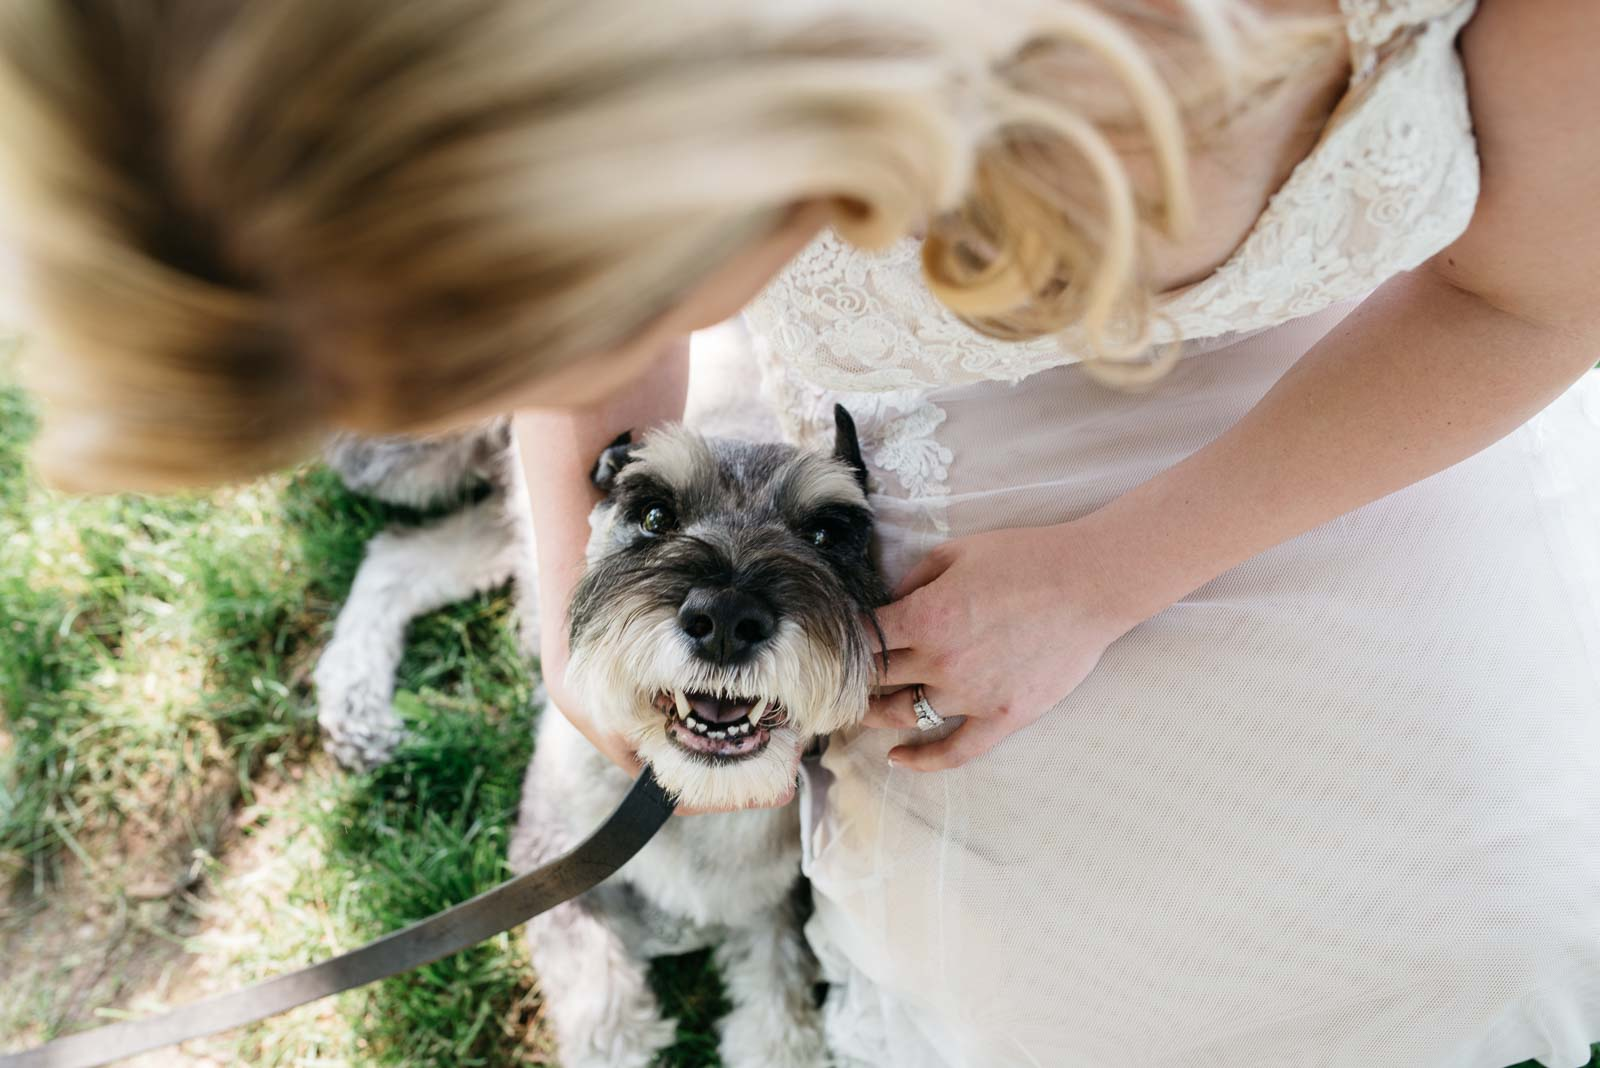 Detail shot of a dog and bride, shot by a second photographer.